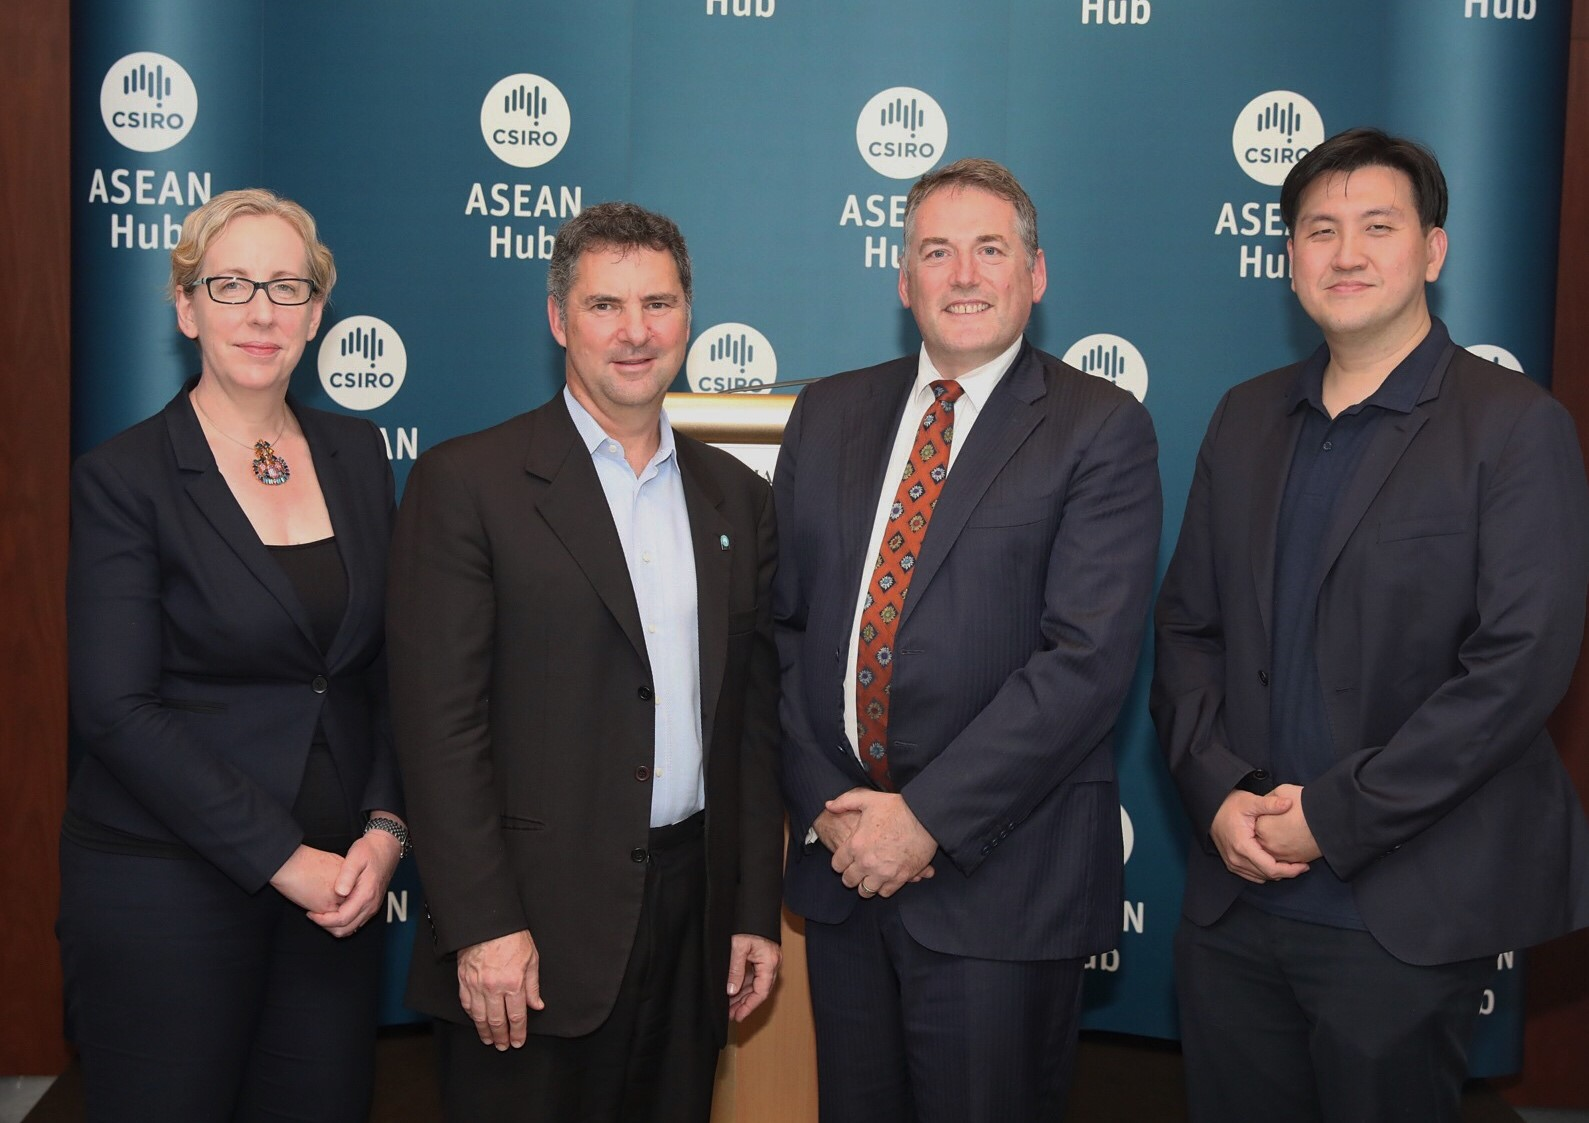 Deputy High Commissioner, Kate Duff CSIRO CE Dr Larry Marshall Executive Director NTU Health Technologies, Prof Russell Gruen, Deputy Chief Executive Officer, National